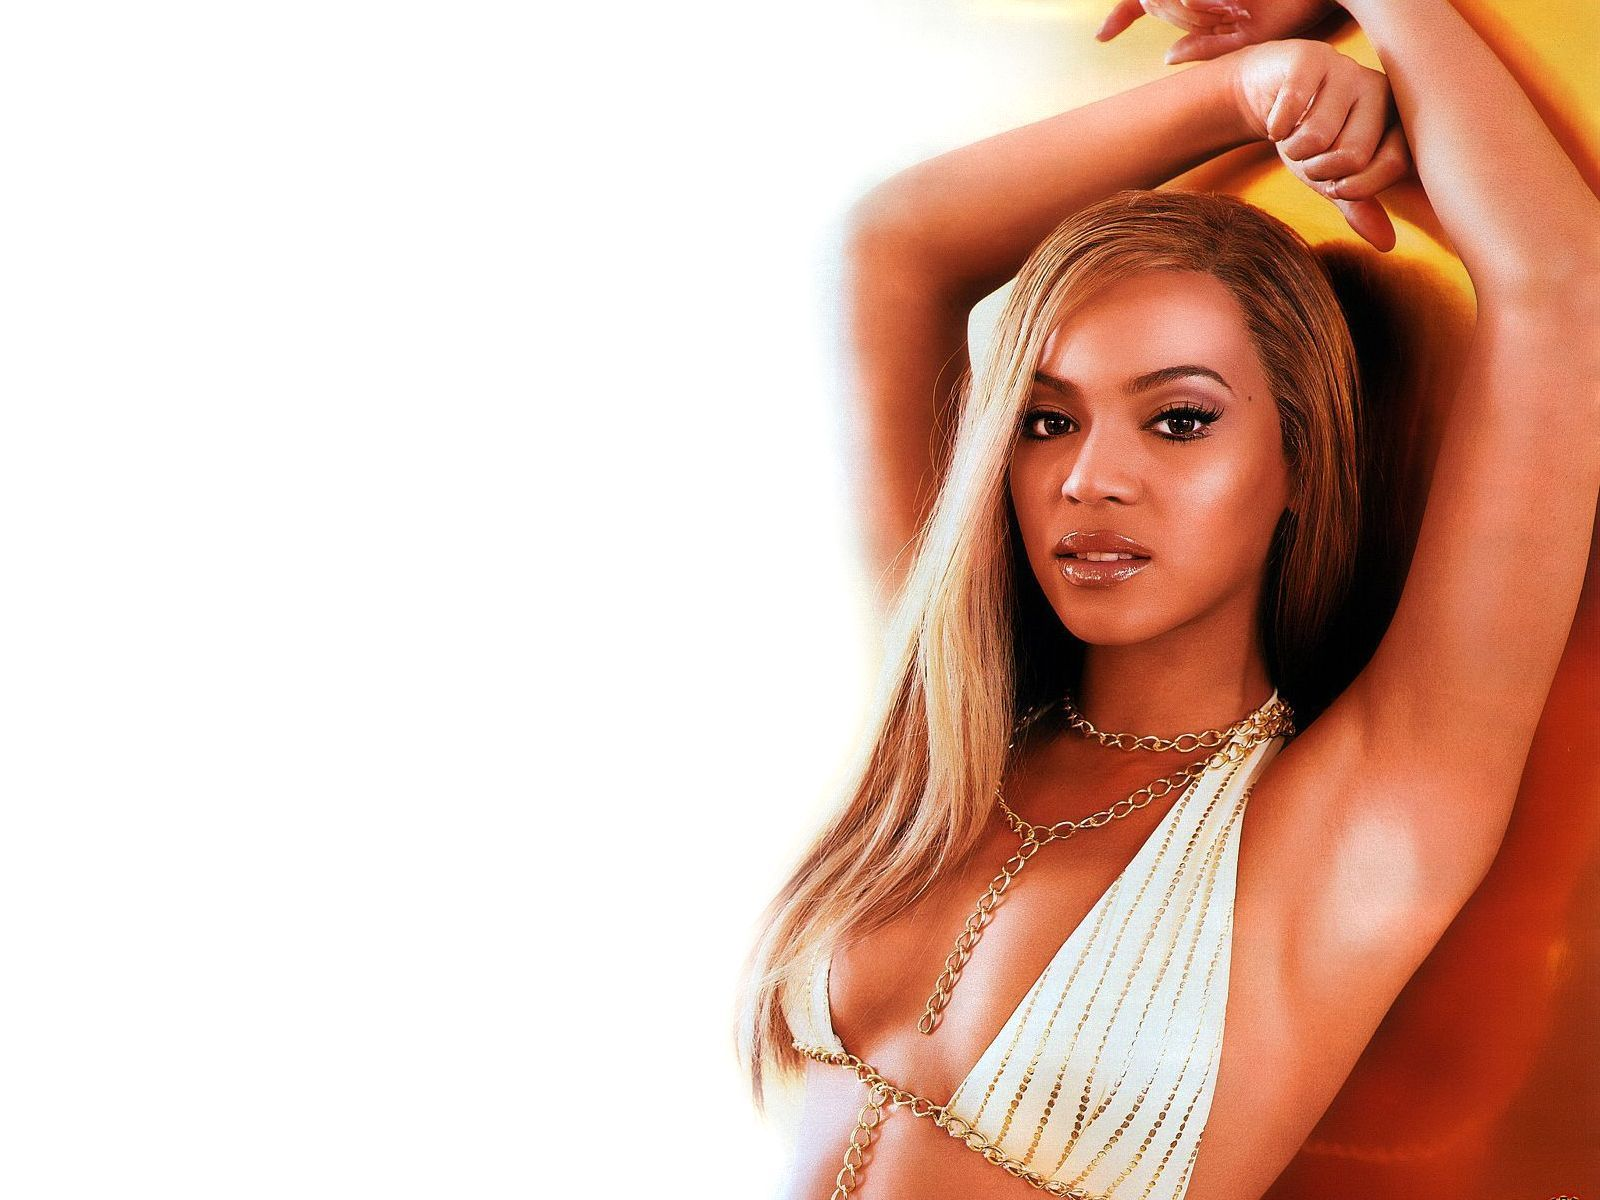 http://images1.fanpop.com/images/photos/2600000/shaHD-Beyonce-wallpapers-beyonce-2622614-1600-1200.jpg